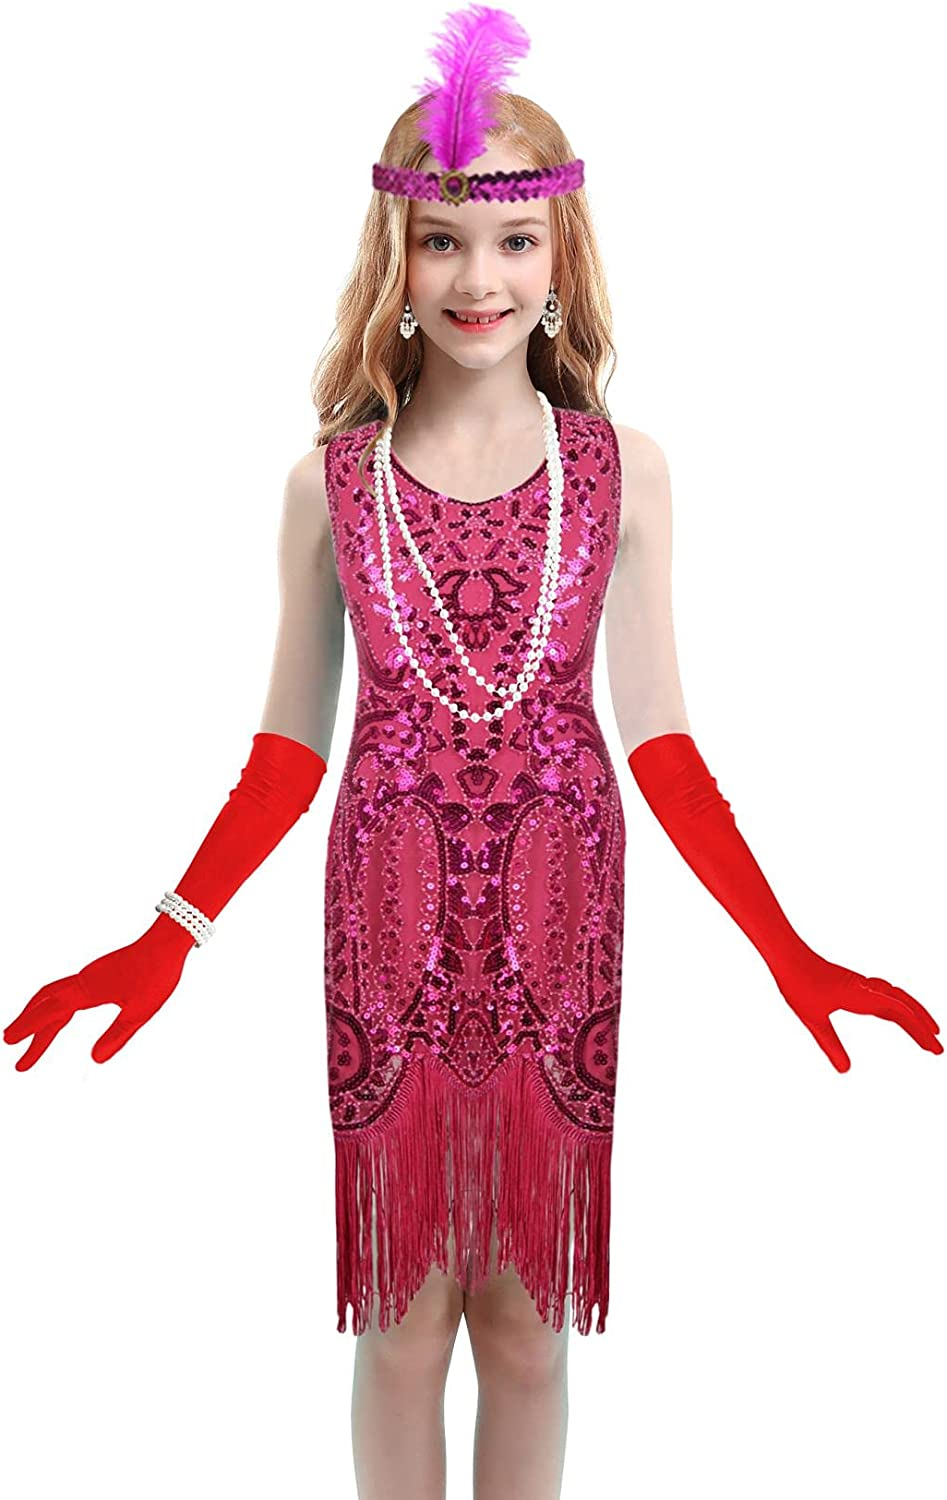 Girls 1920s Flapper Roaring 20s Sequin Hallow Dress Credence Dance Gatsby Max 53% OFF